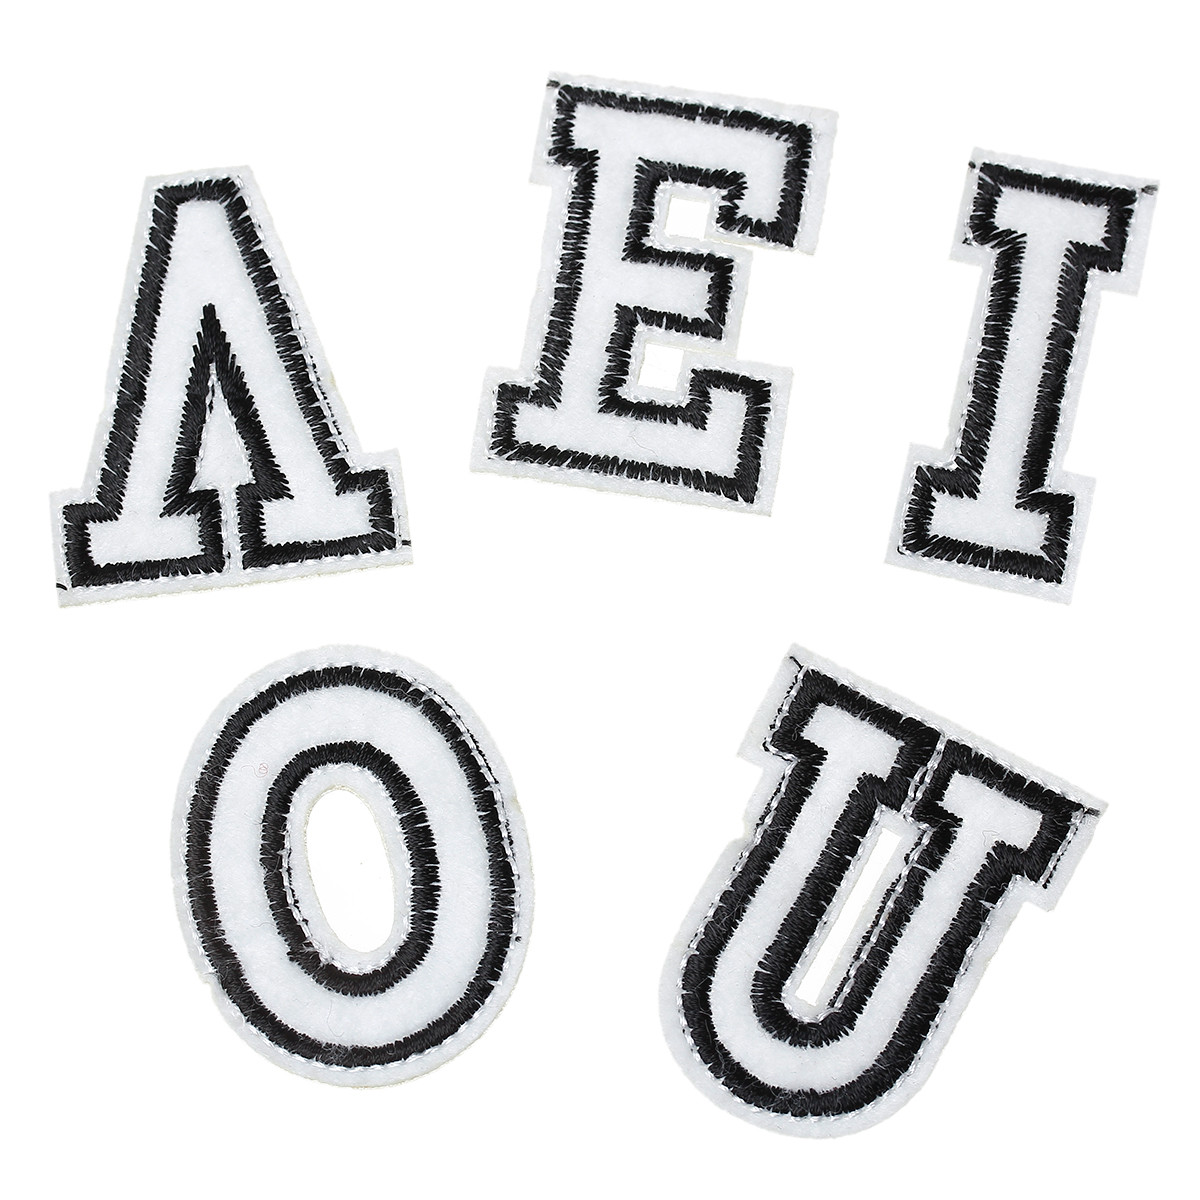 10 Pcs Black and White Alphabet Letters Embroidered Cloth Iron on Patches App...